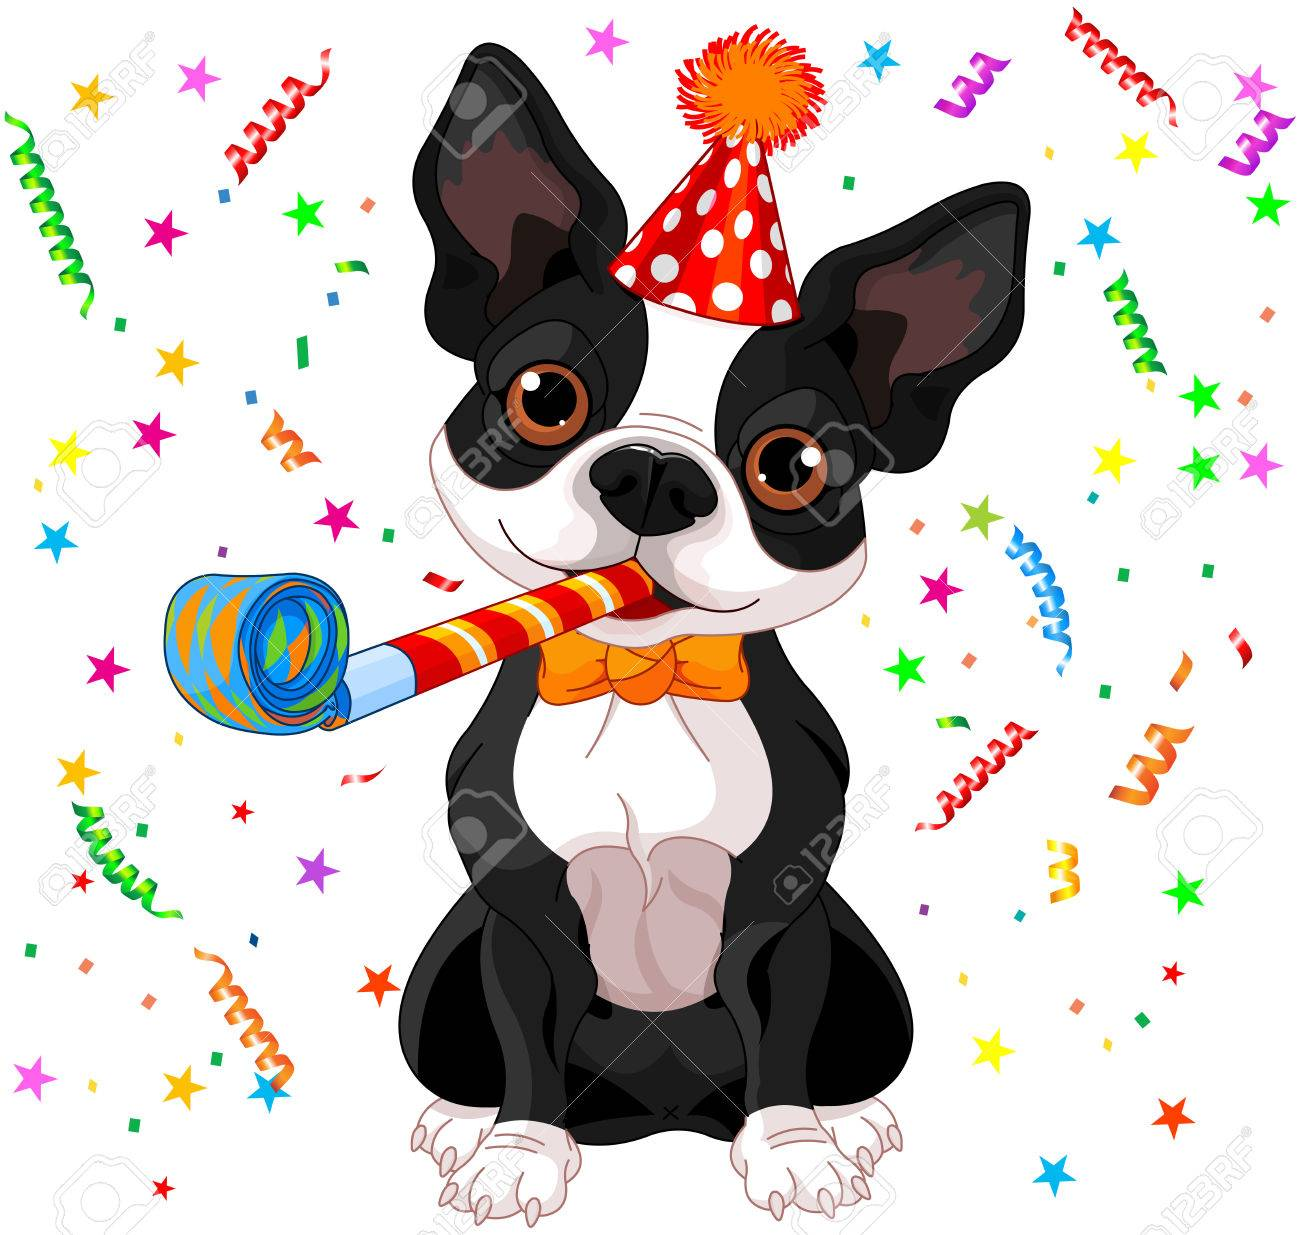 Grogne - garde son os - Page 6 35588778-illustration-of-cute-boston-terrier-celebrating